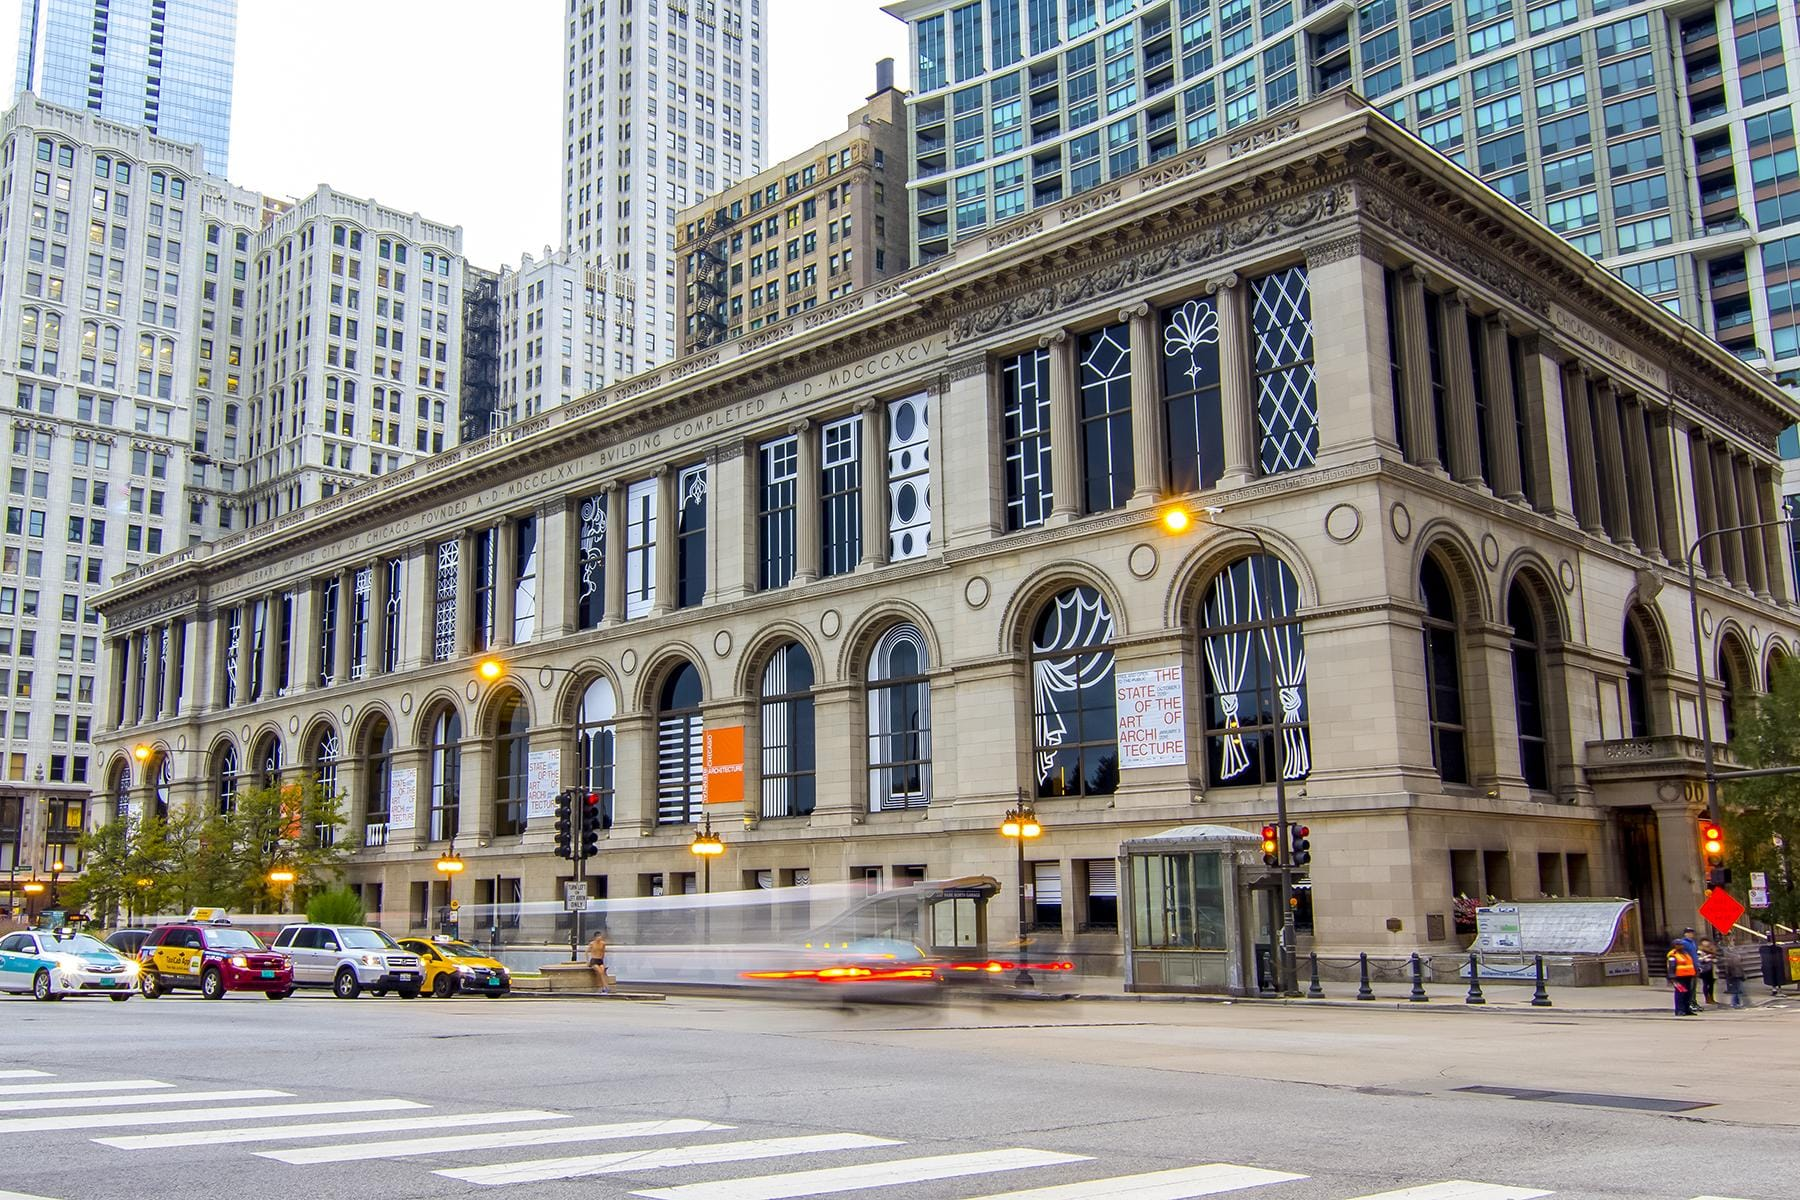 11 Things Not to Do in Chicago, Illinois